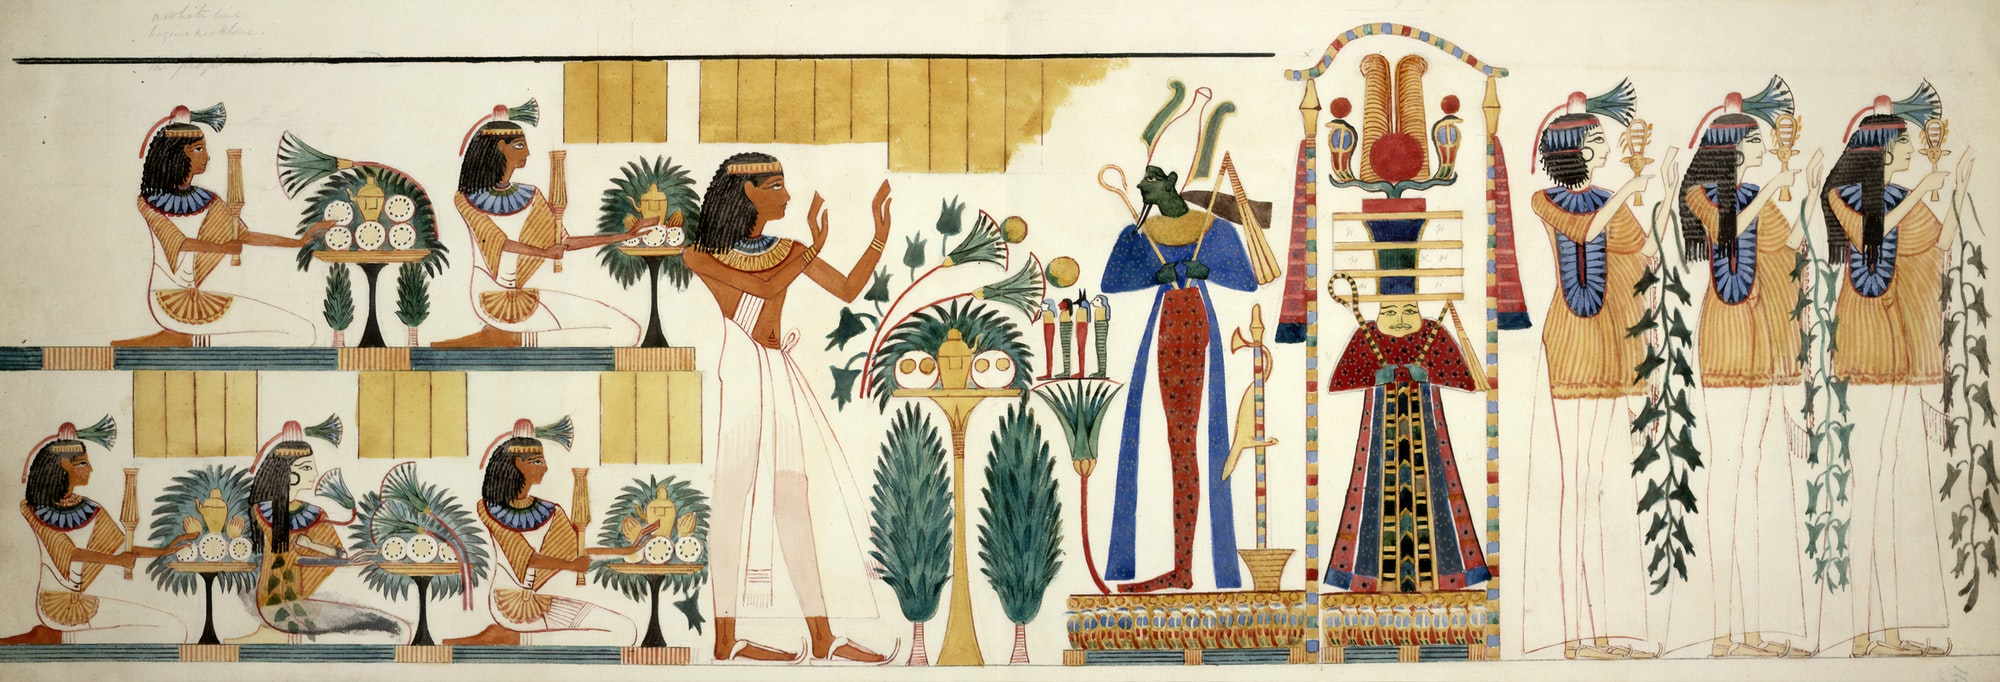 Ptahhotep and the Emeralds of Wisdom